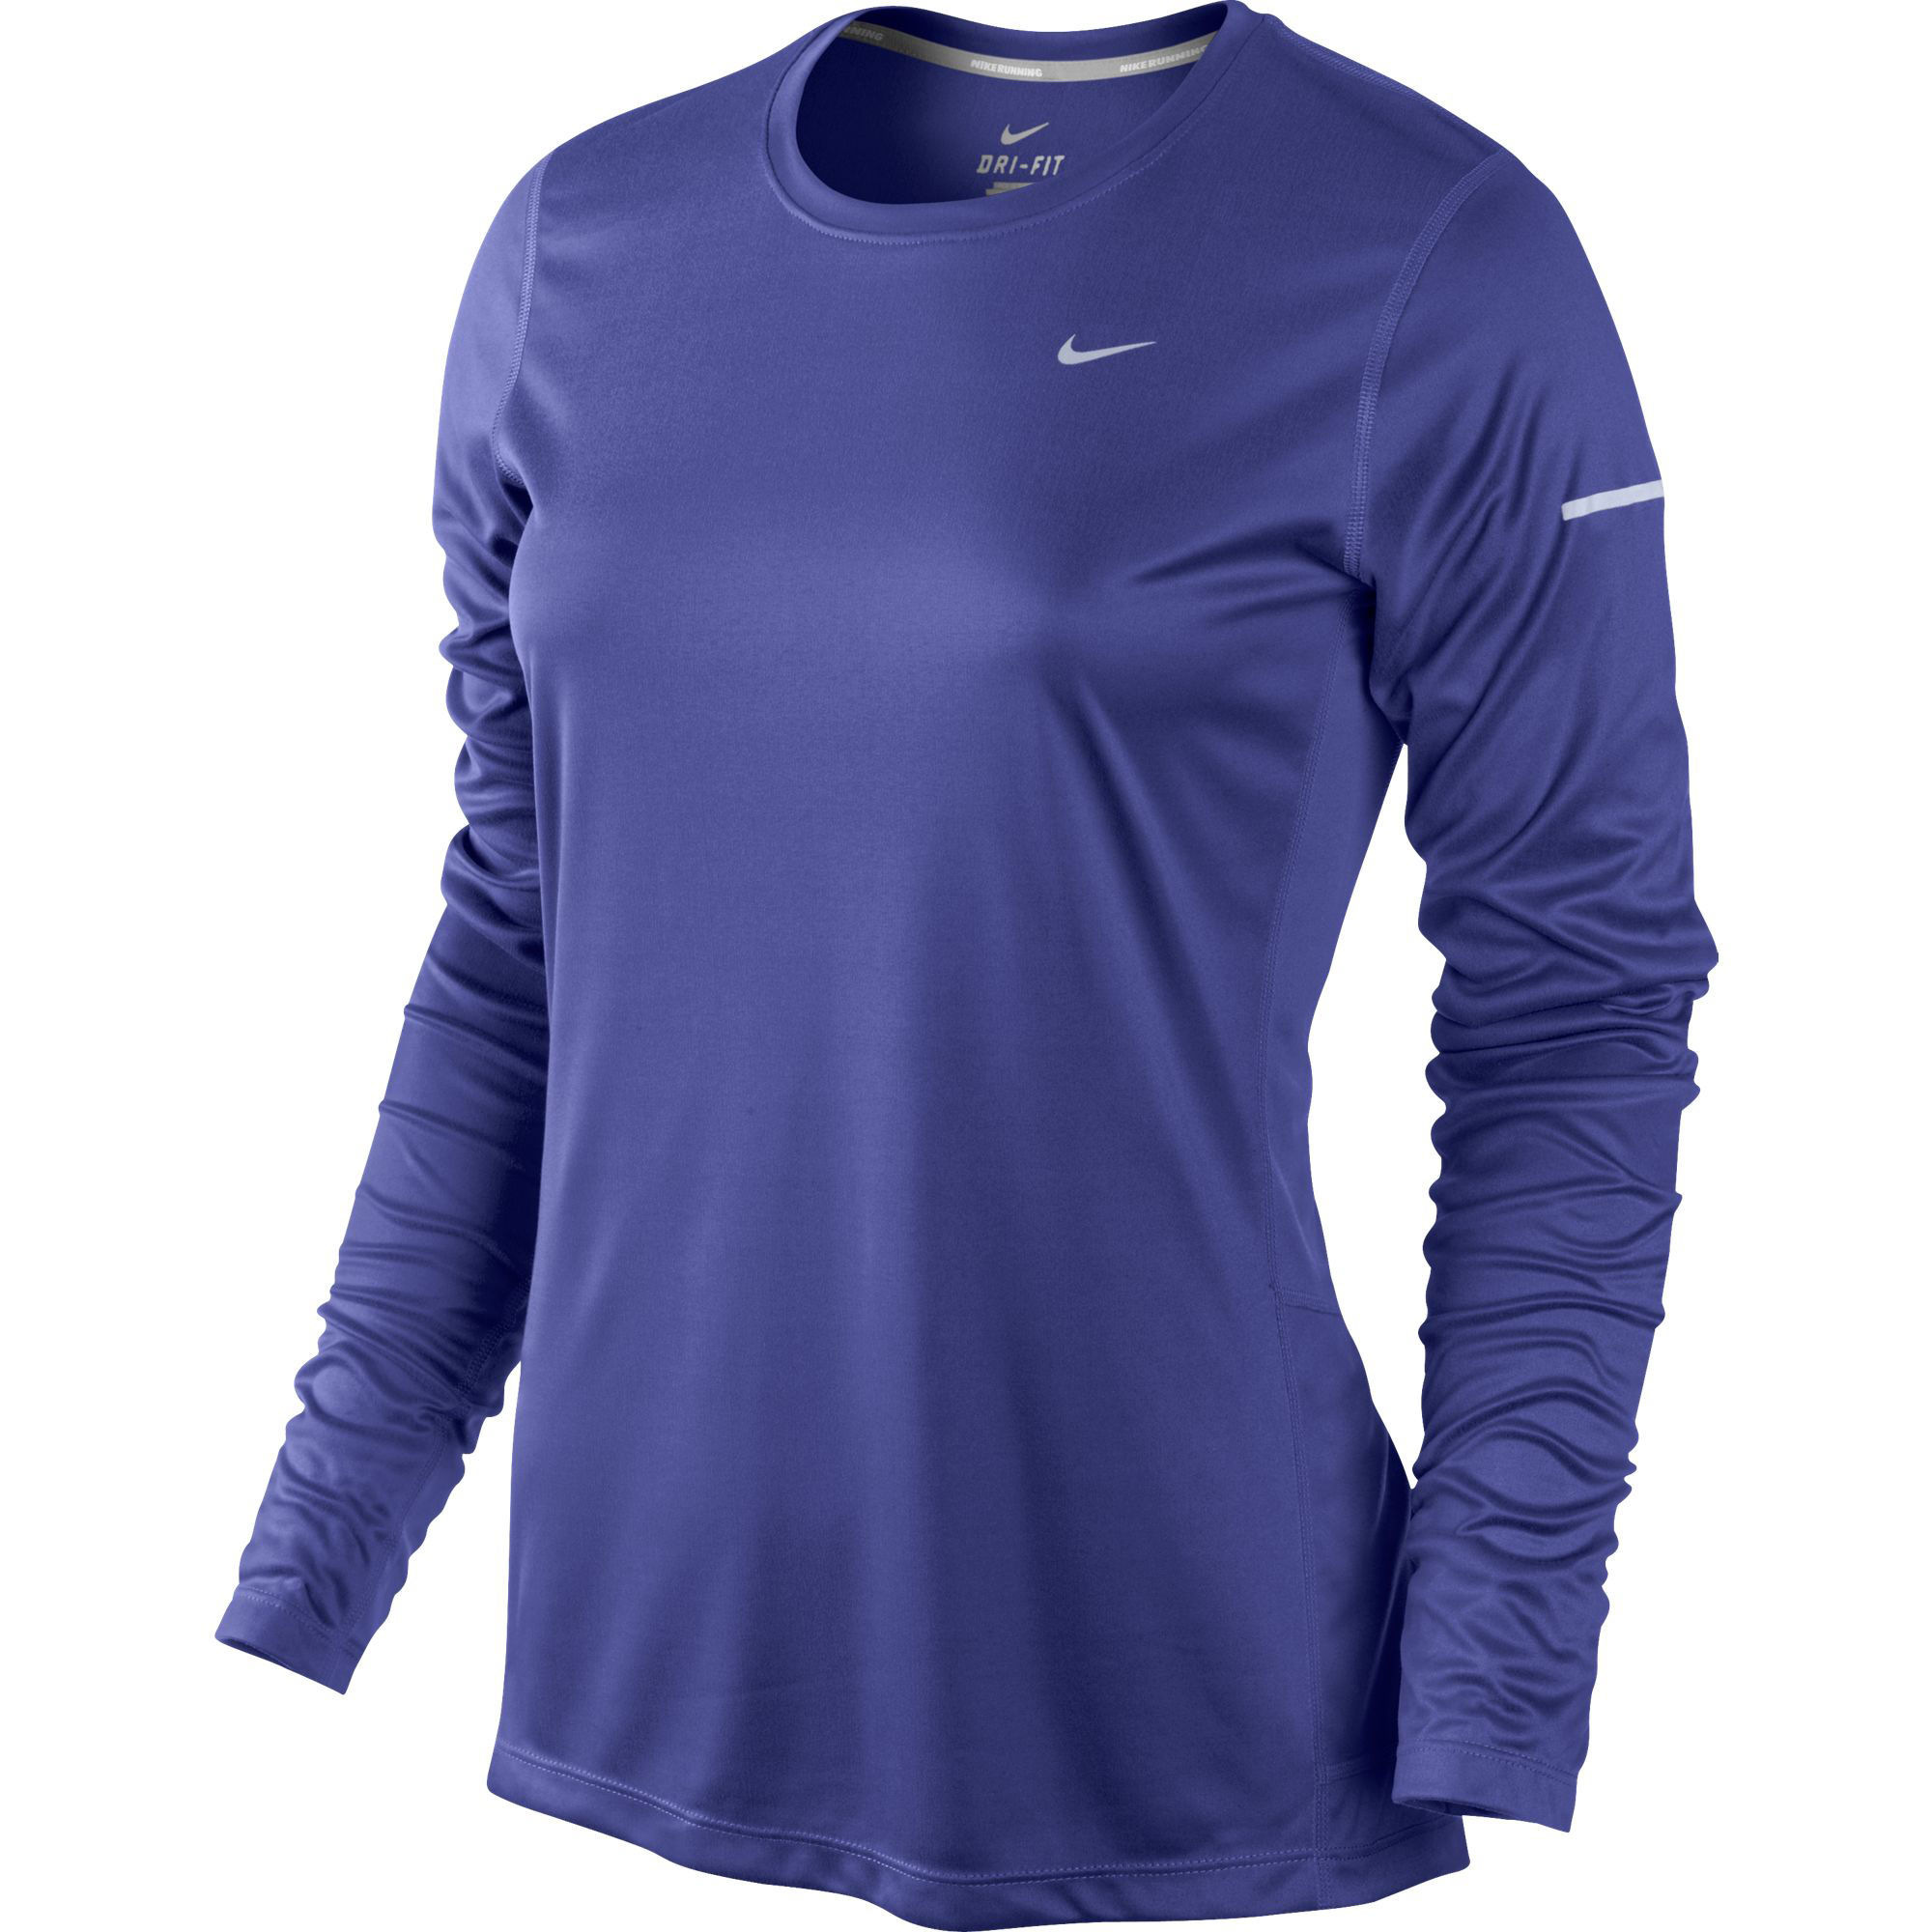 Wiggle nike women 39 s miler long sleeve top sp14 long for Women s running shirts